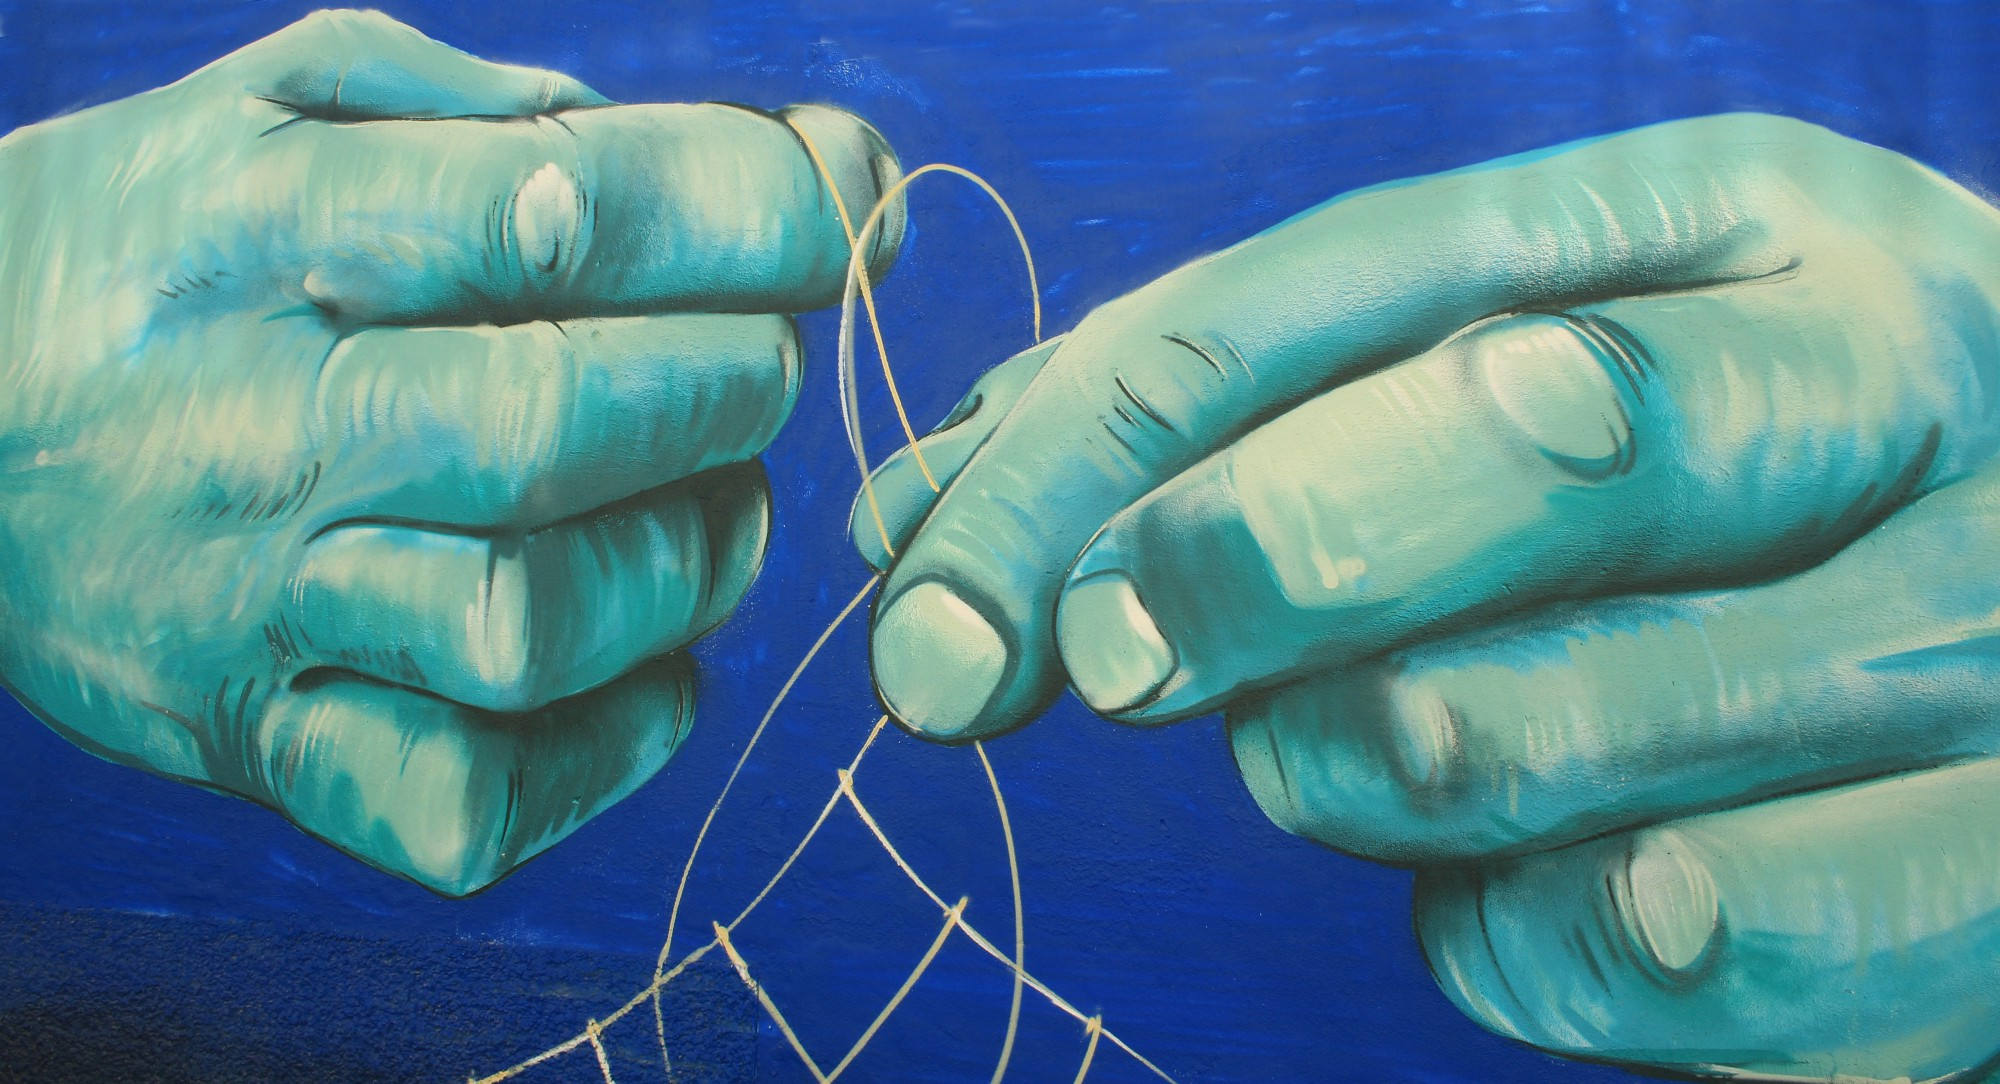 a drawing of hands tying string.